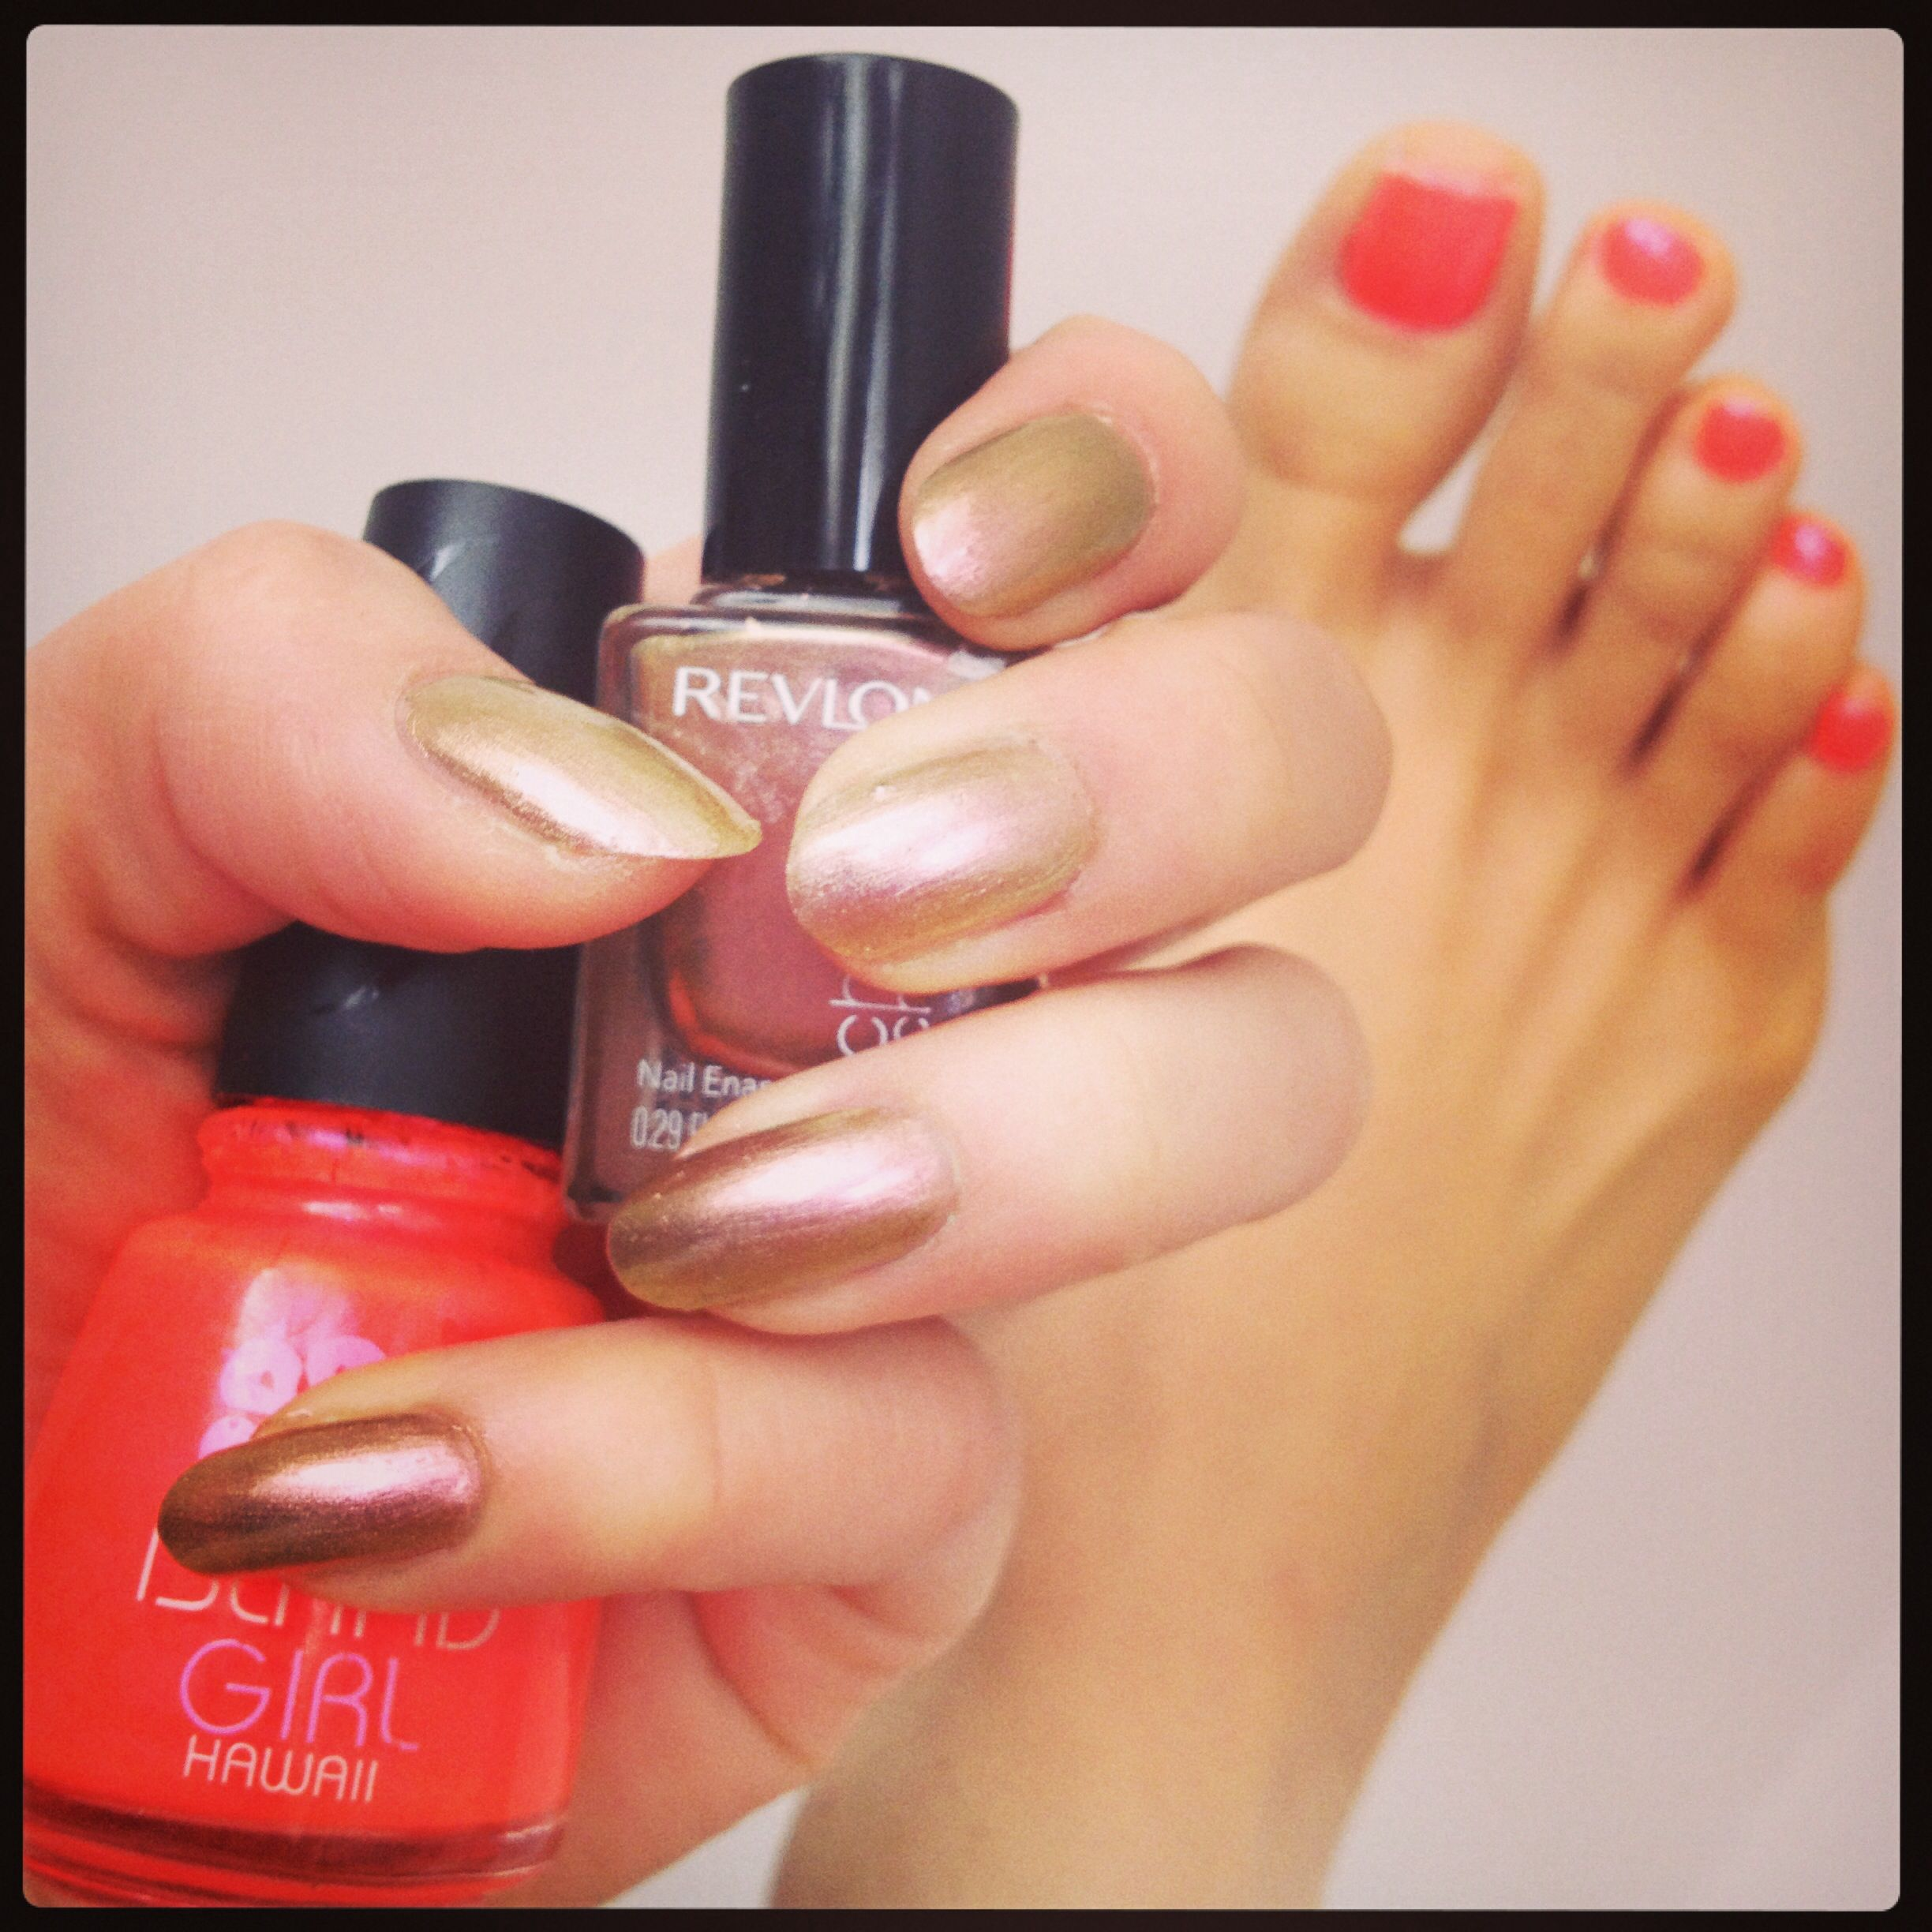 gold and neon pink /orange nails island girl revlon manicure ...